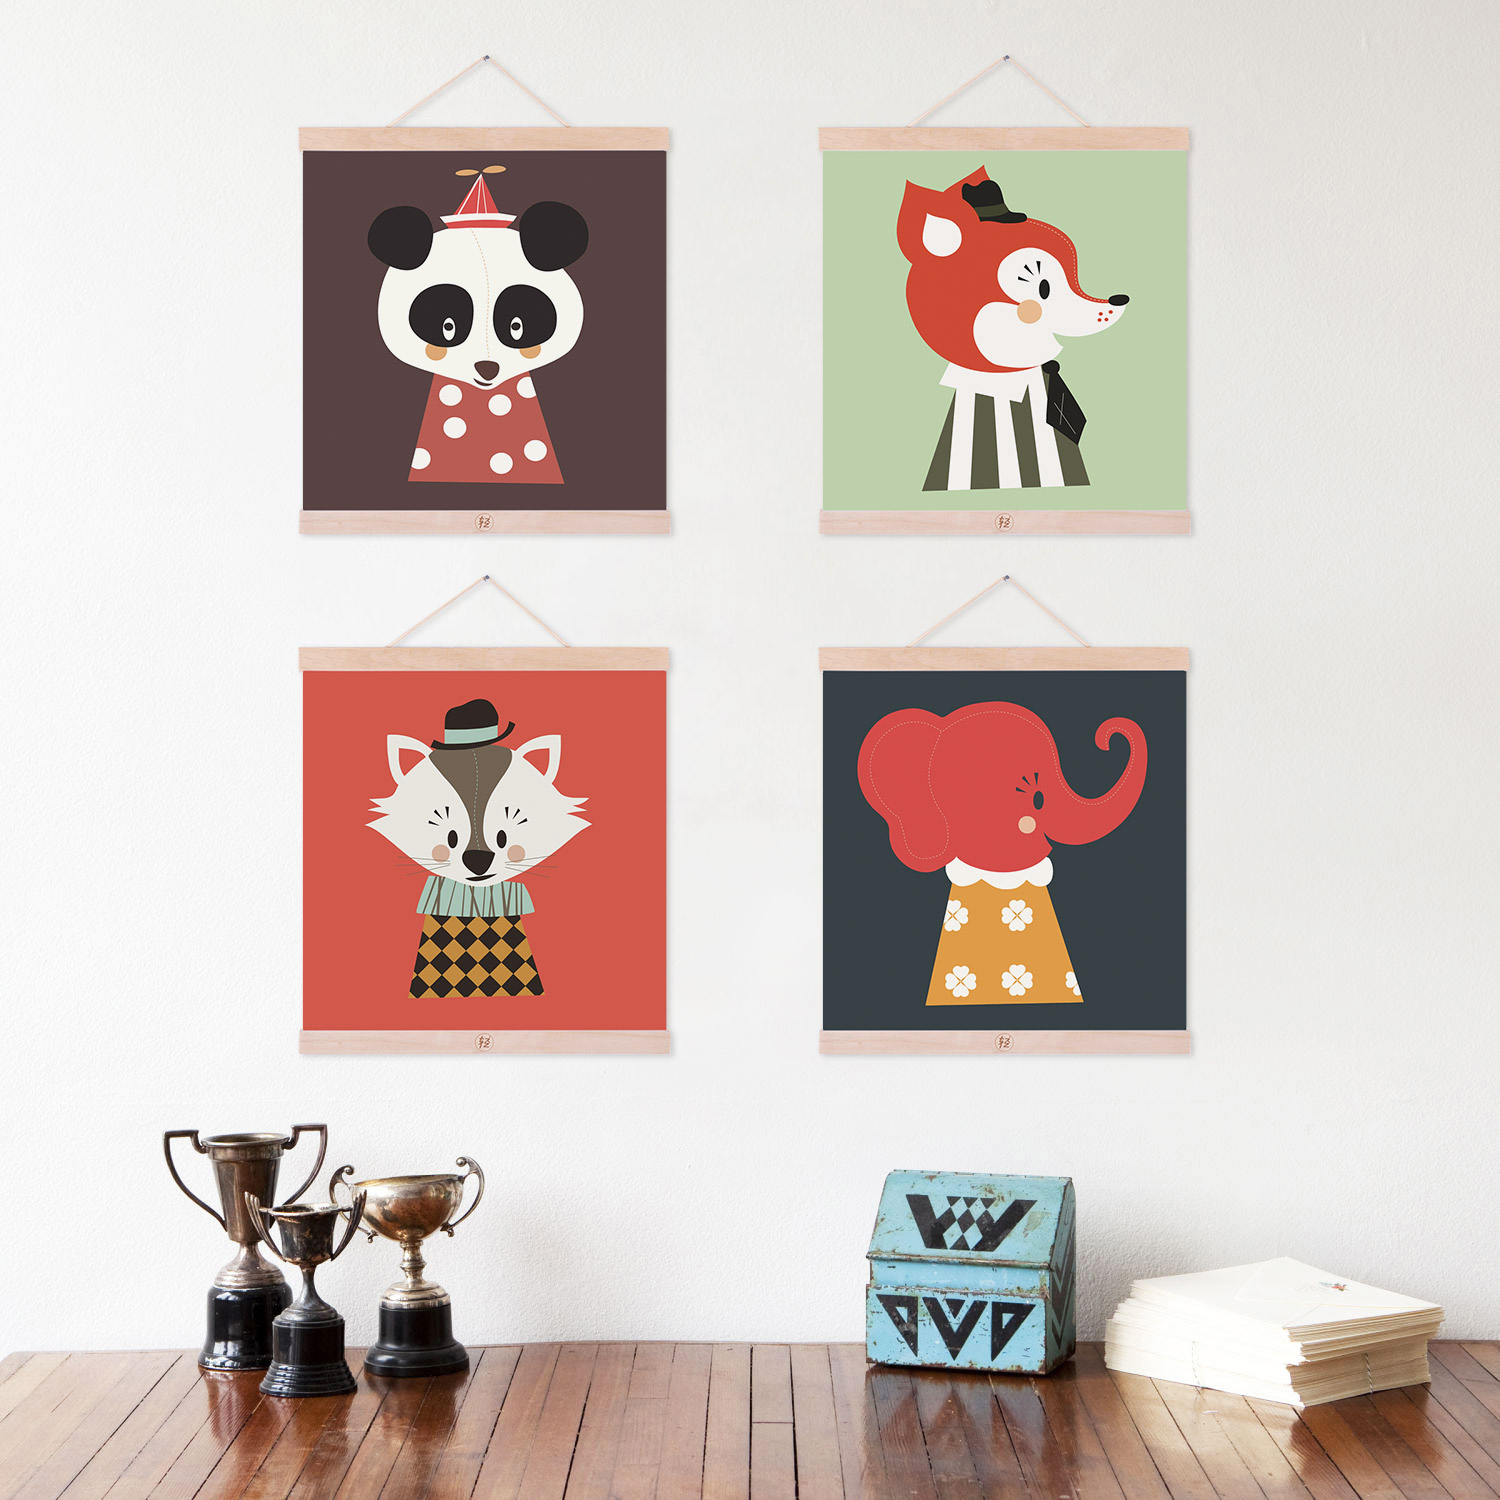 Color Kawaii Animals Fox Panda Wooden Framed Canvas Painting Nordic Style Kids Baby Room Wall Art Pictures Decor Posters Scroll In Calligraphy